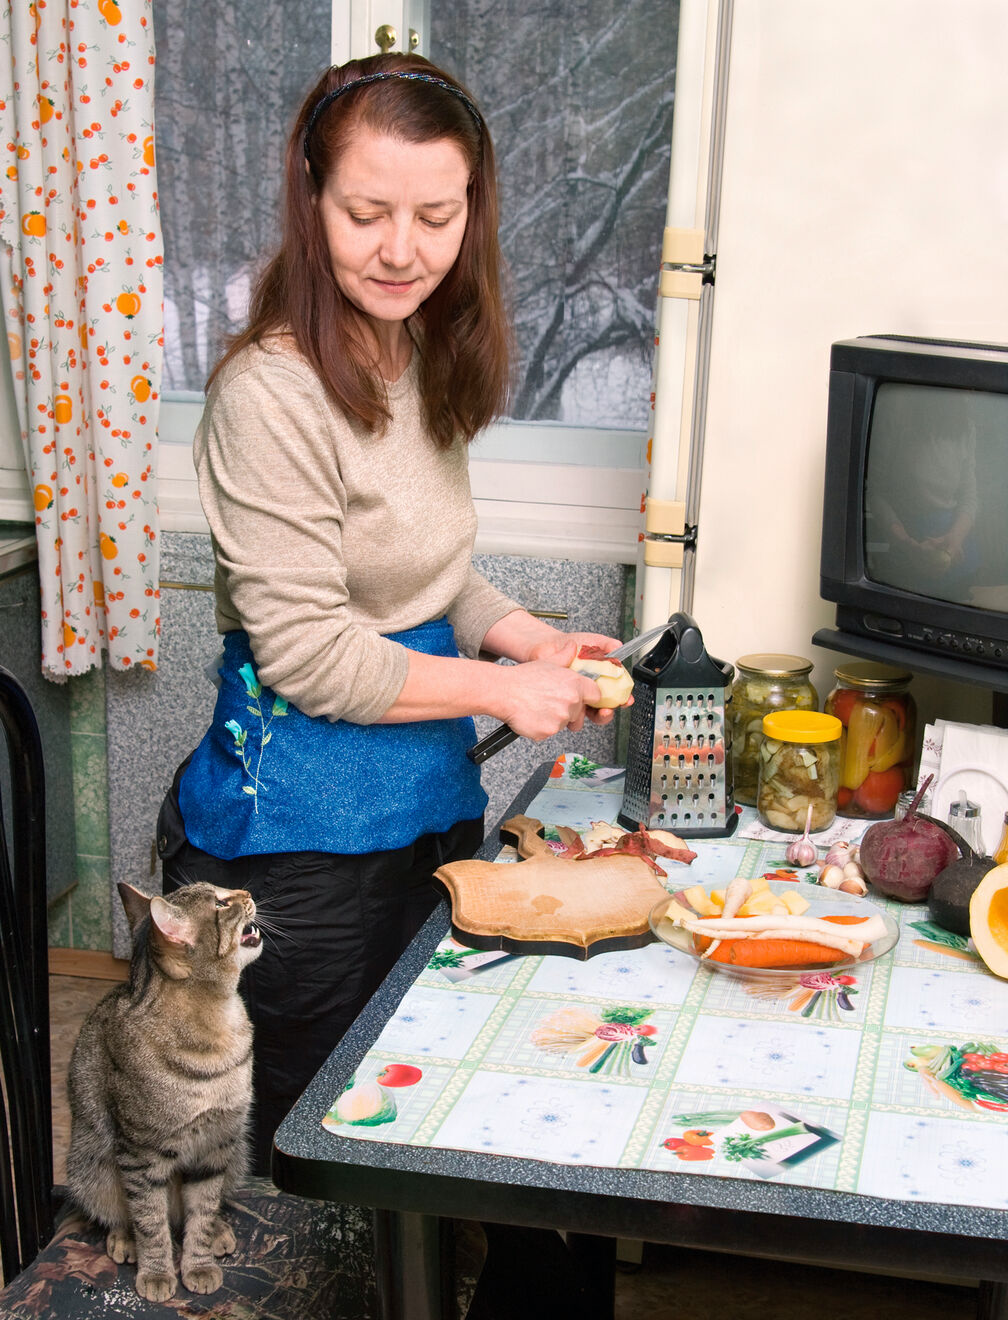 An owner may offer their pet extra food, for example during the preparation of human food.